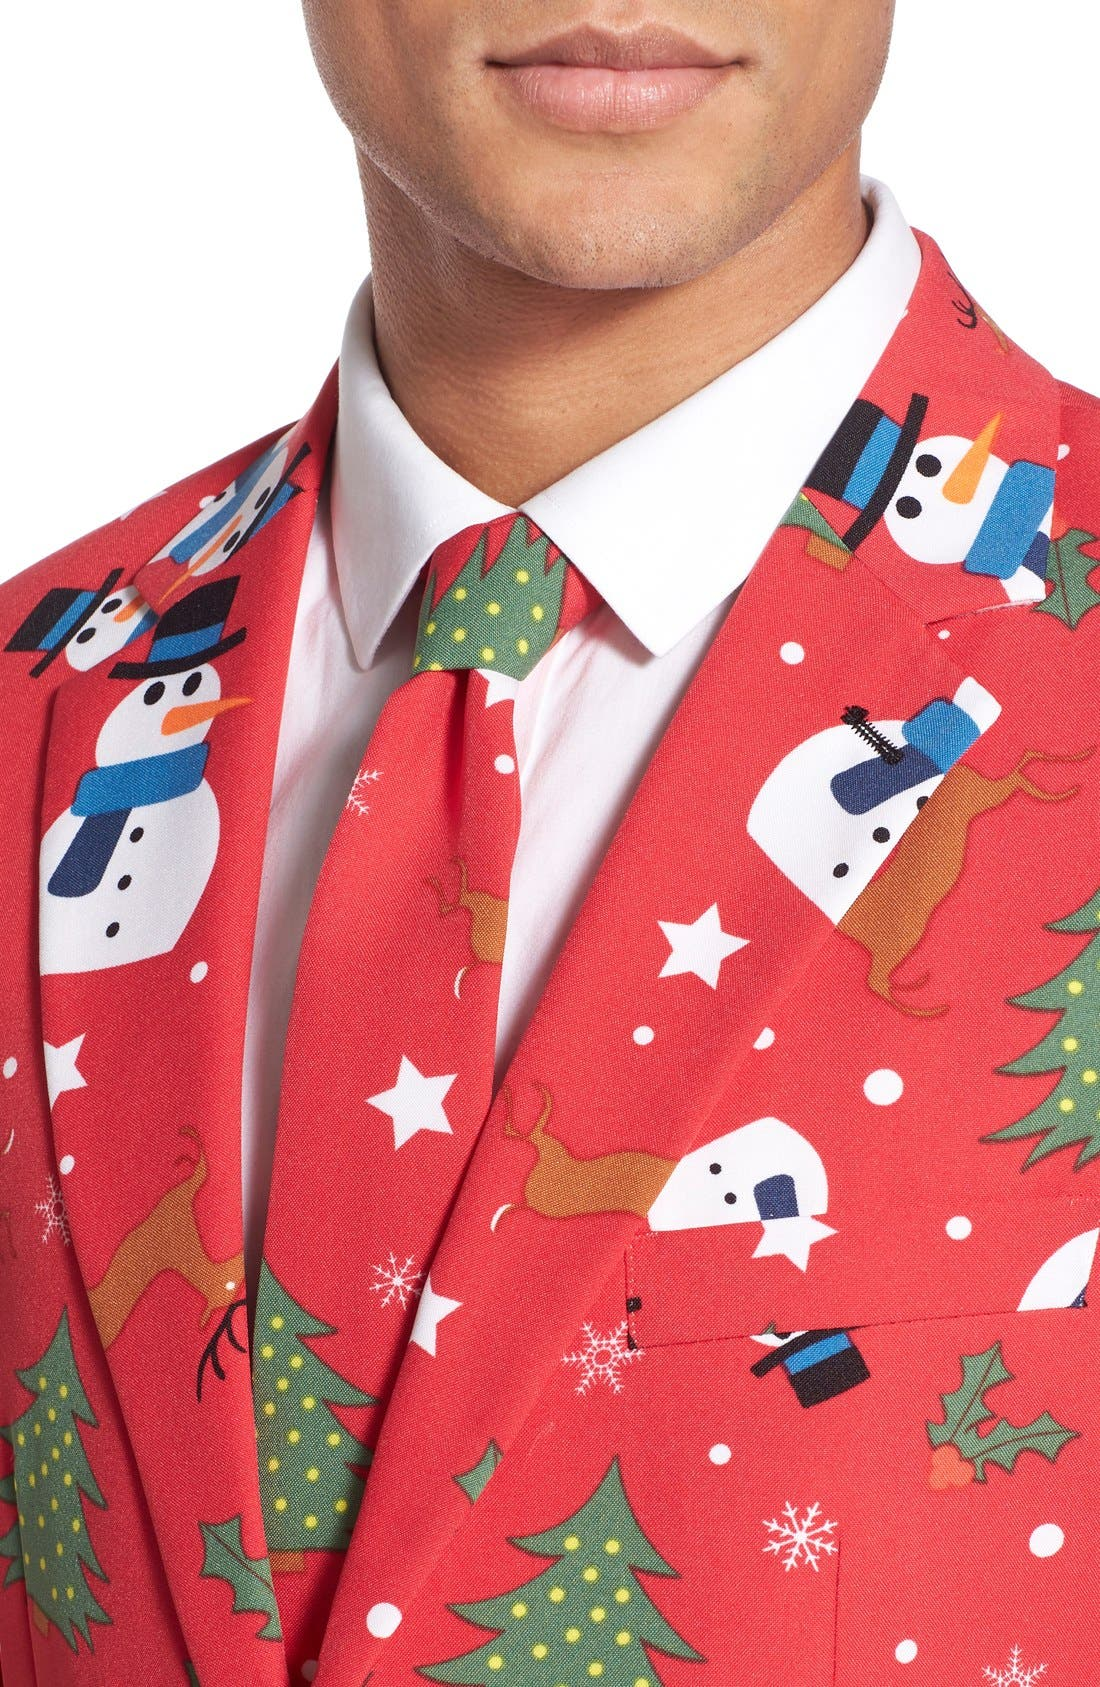 'Christmaster' Holiday Suit & Tie,                             Alternate thumbnail 6, color,                             Red